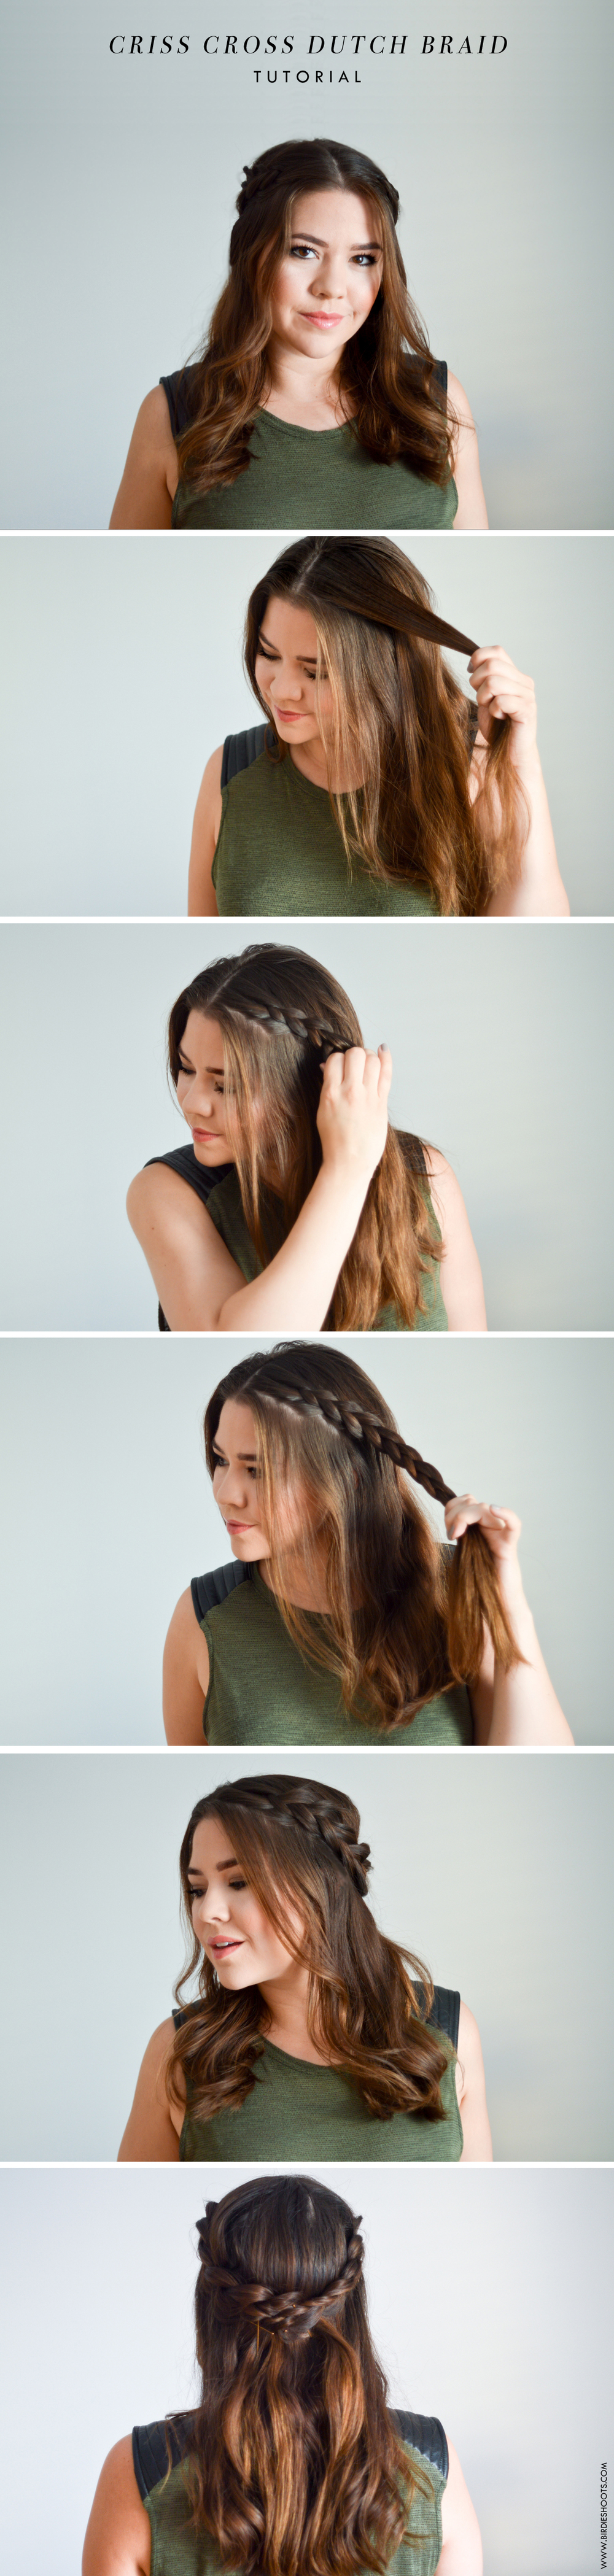 Crossed Dutch Braid Tutorial via. Birdie Shoots